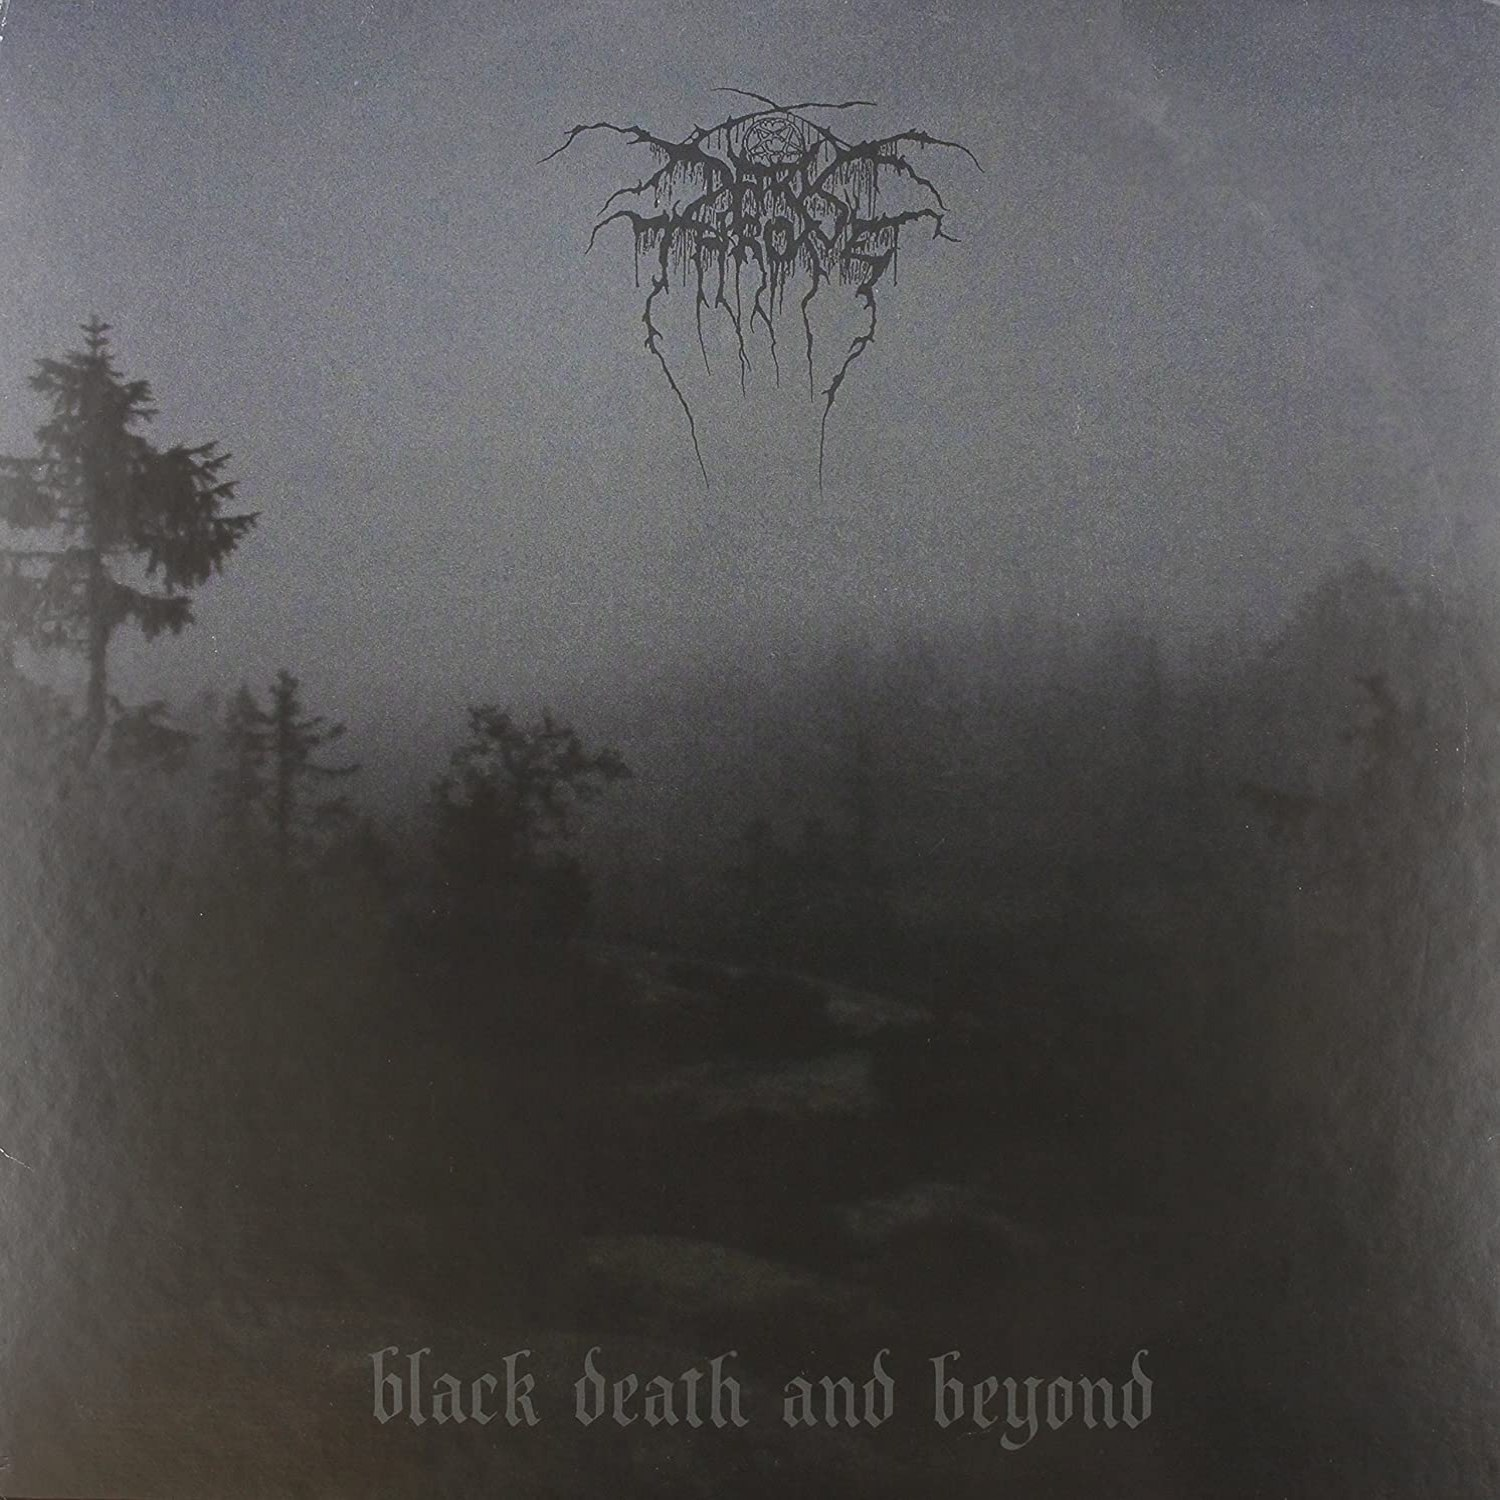 Darkthrone - Black Death and Beyond